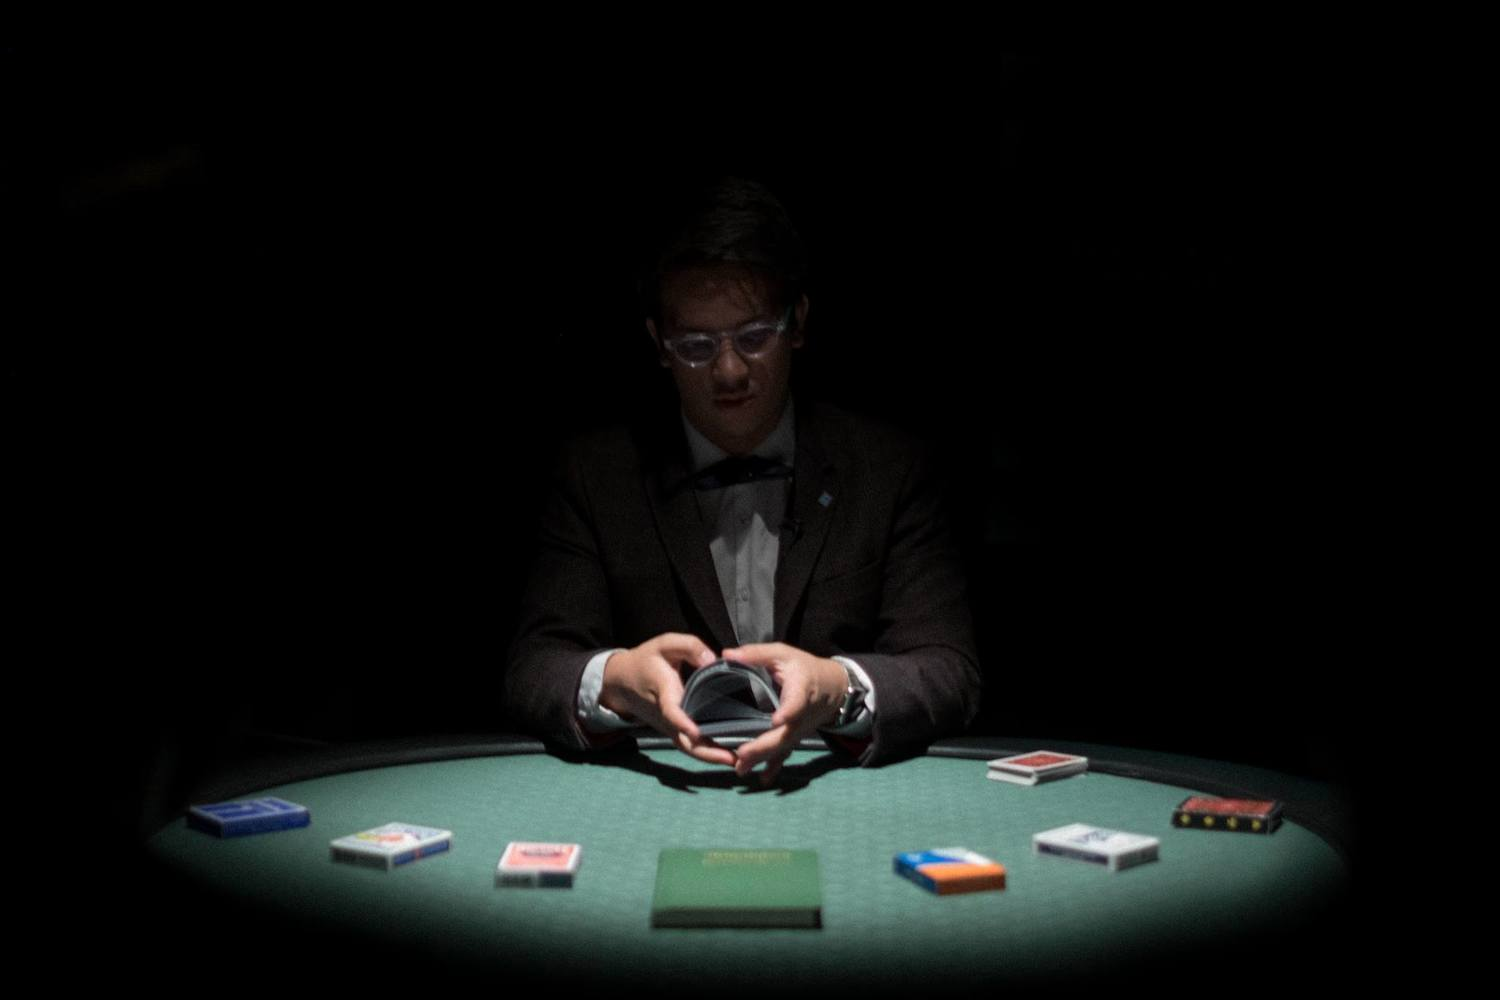 BWW Review: THE EXPERT AT THE CARD TABLE - HOW TO CHEAT AT CARDS: ADELAIDE FRINGE 2018 at La Boheme